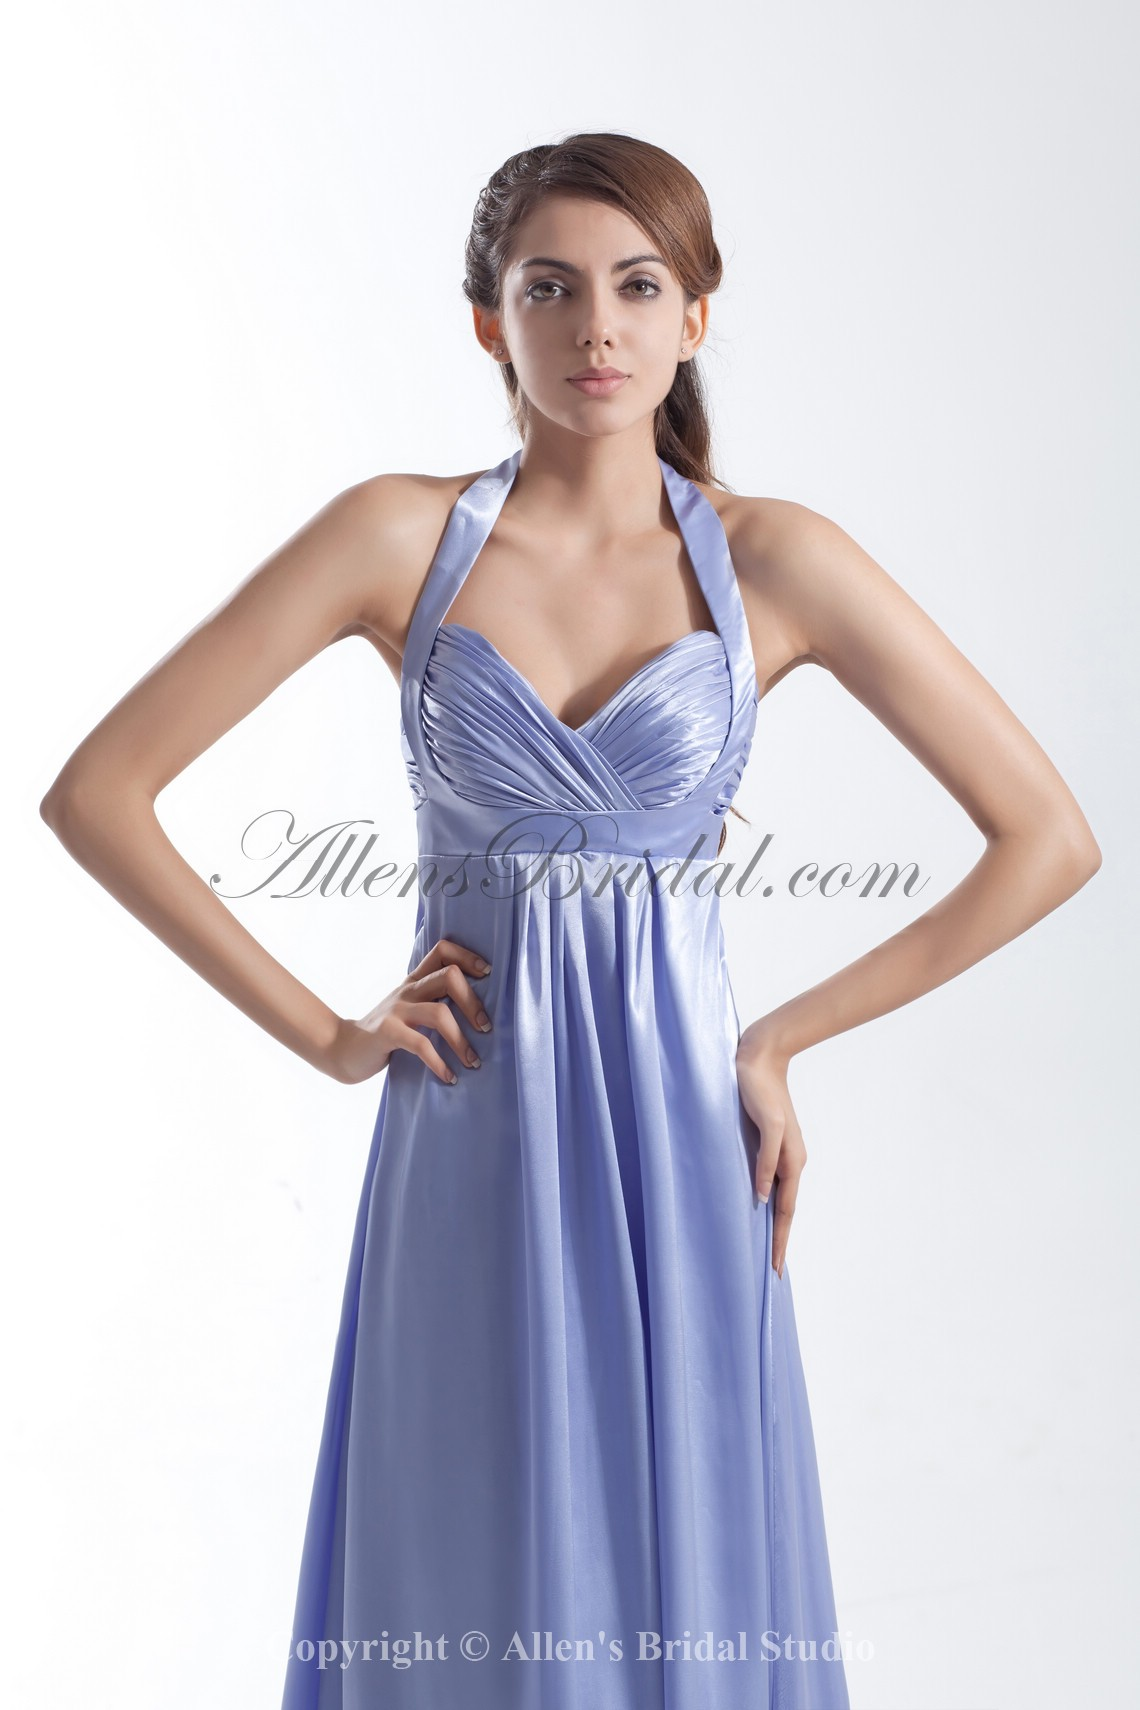 /662-5306/satin-halter-neckline-floor-length-column-prom-dress.jpg